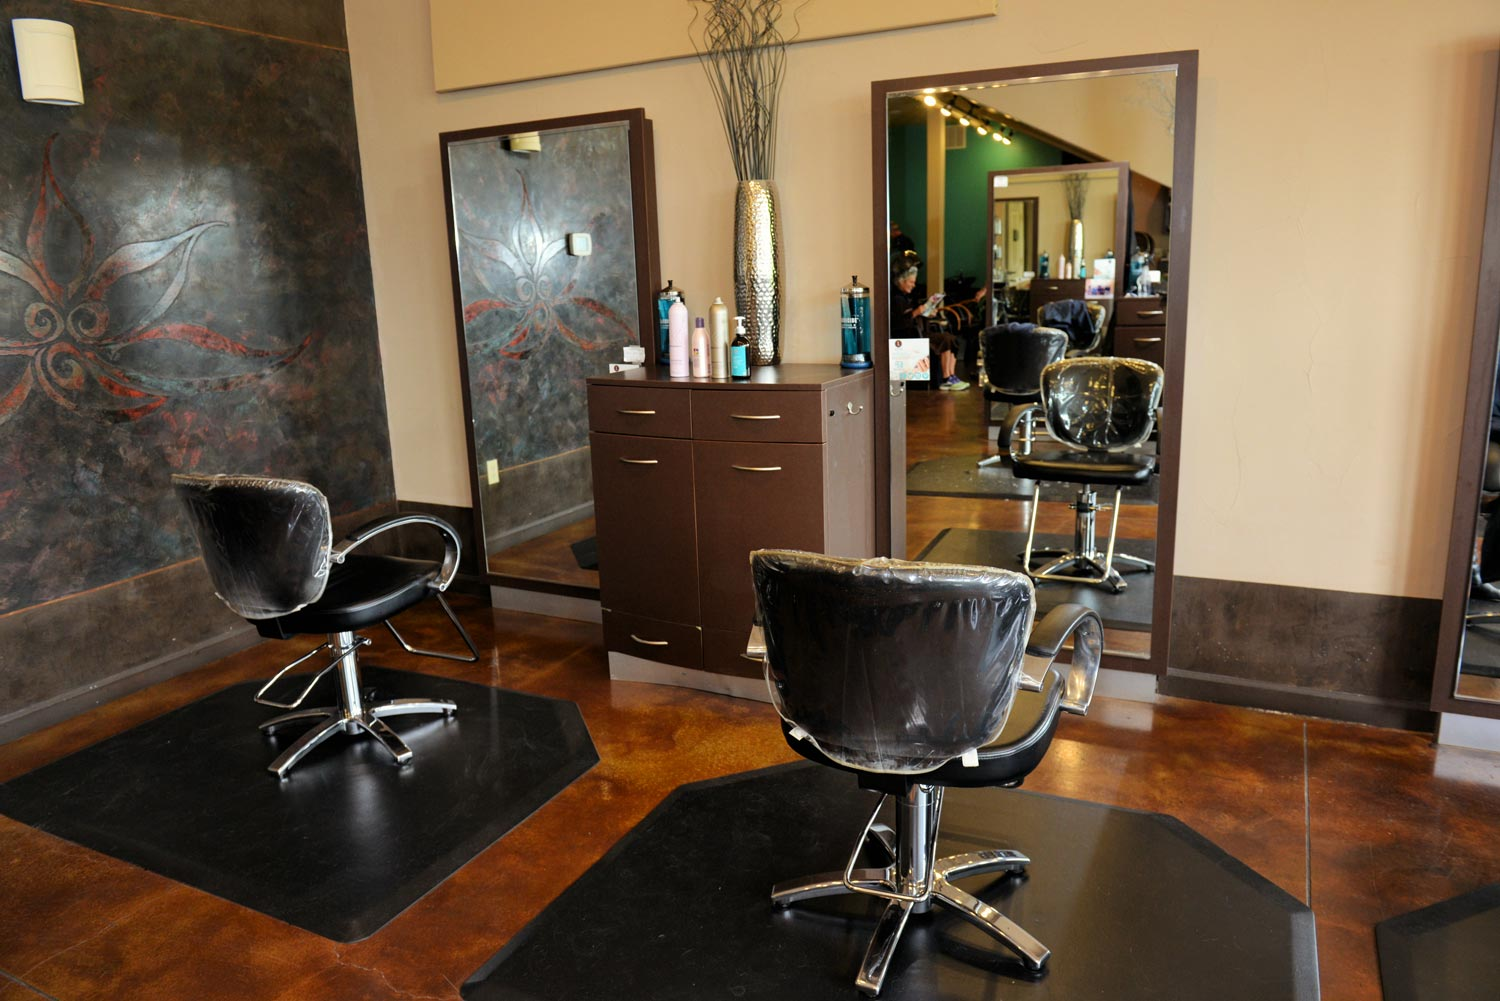 Lotus offers hair style services and complete salon and spa services including facials, massage, body treatments and much more.